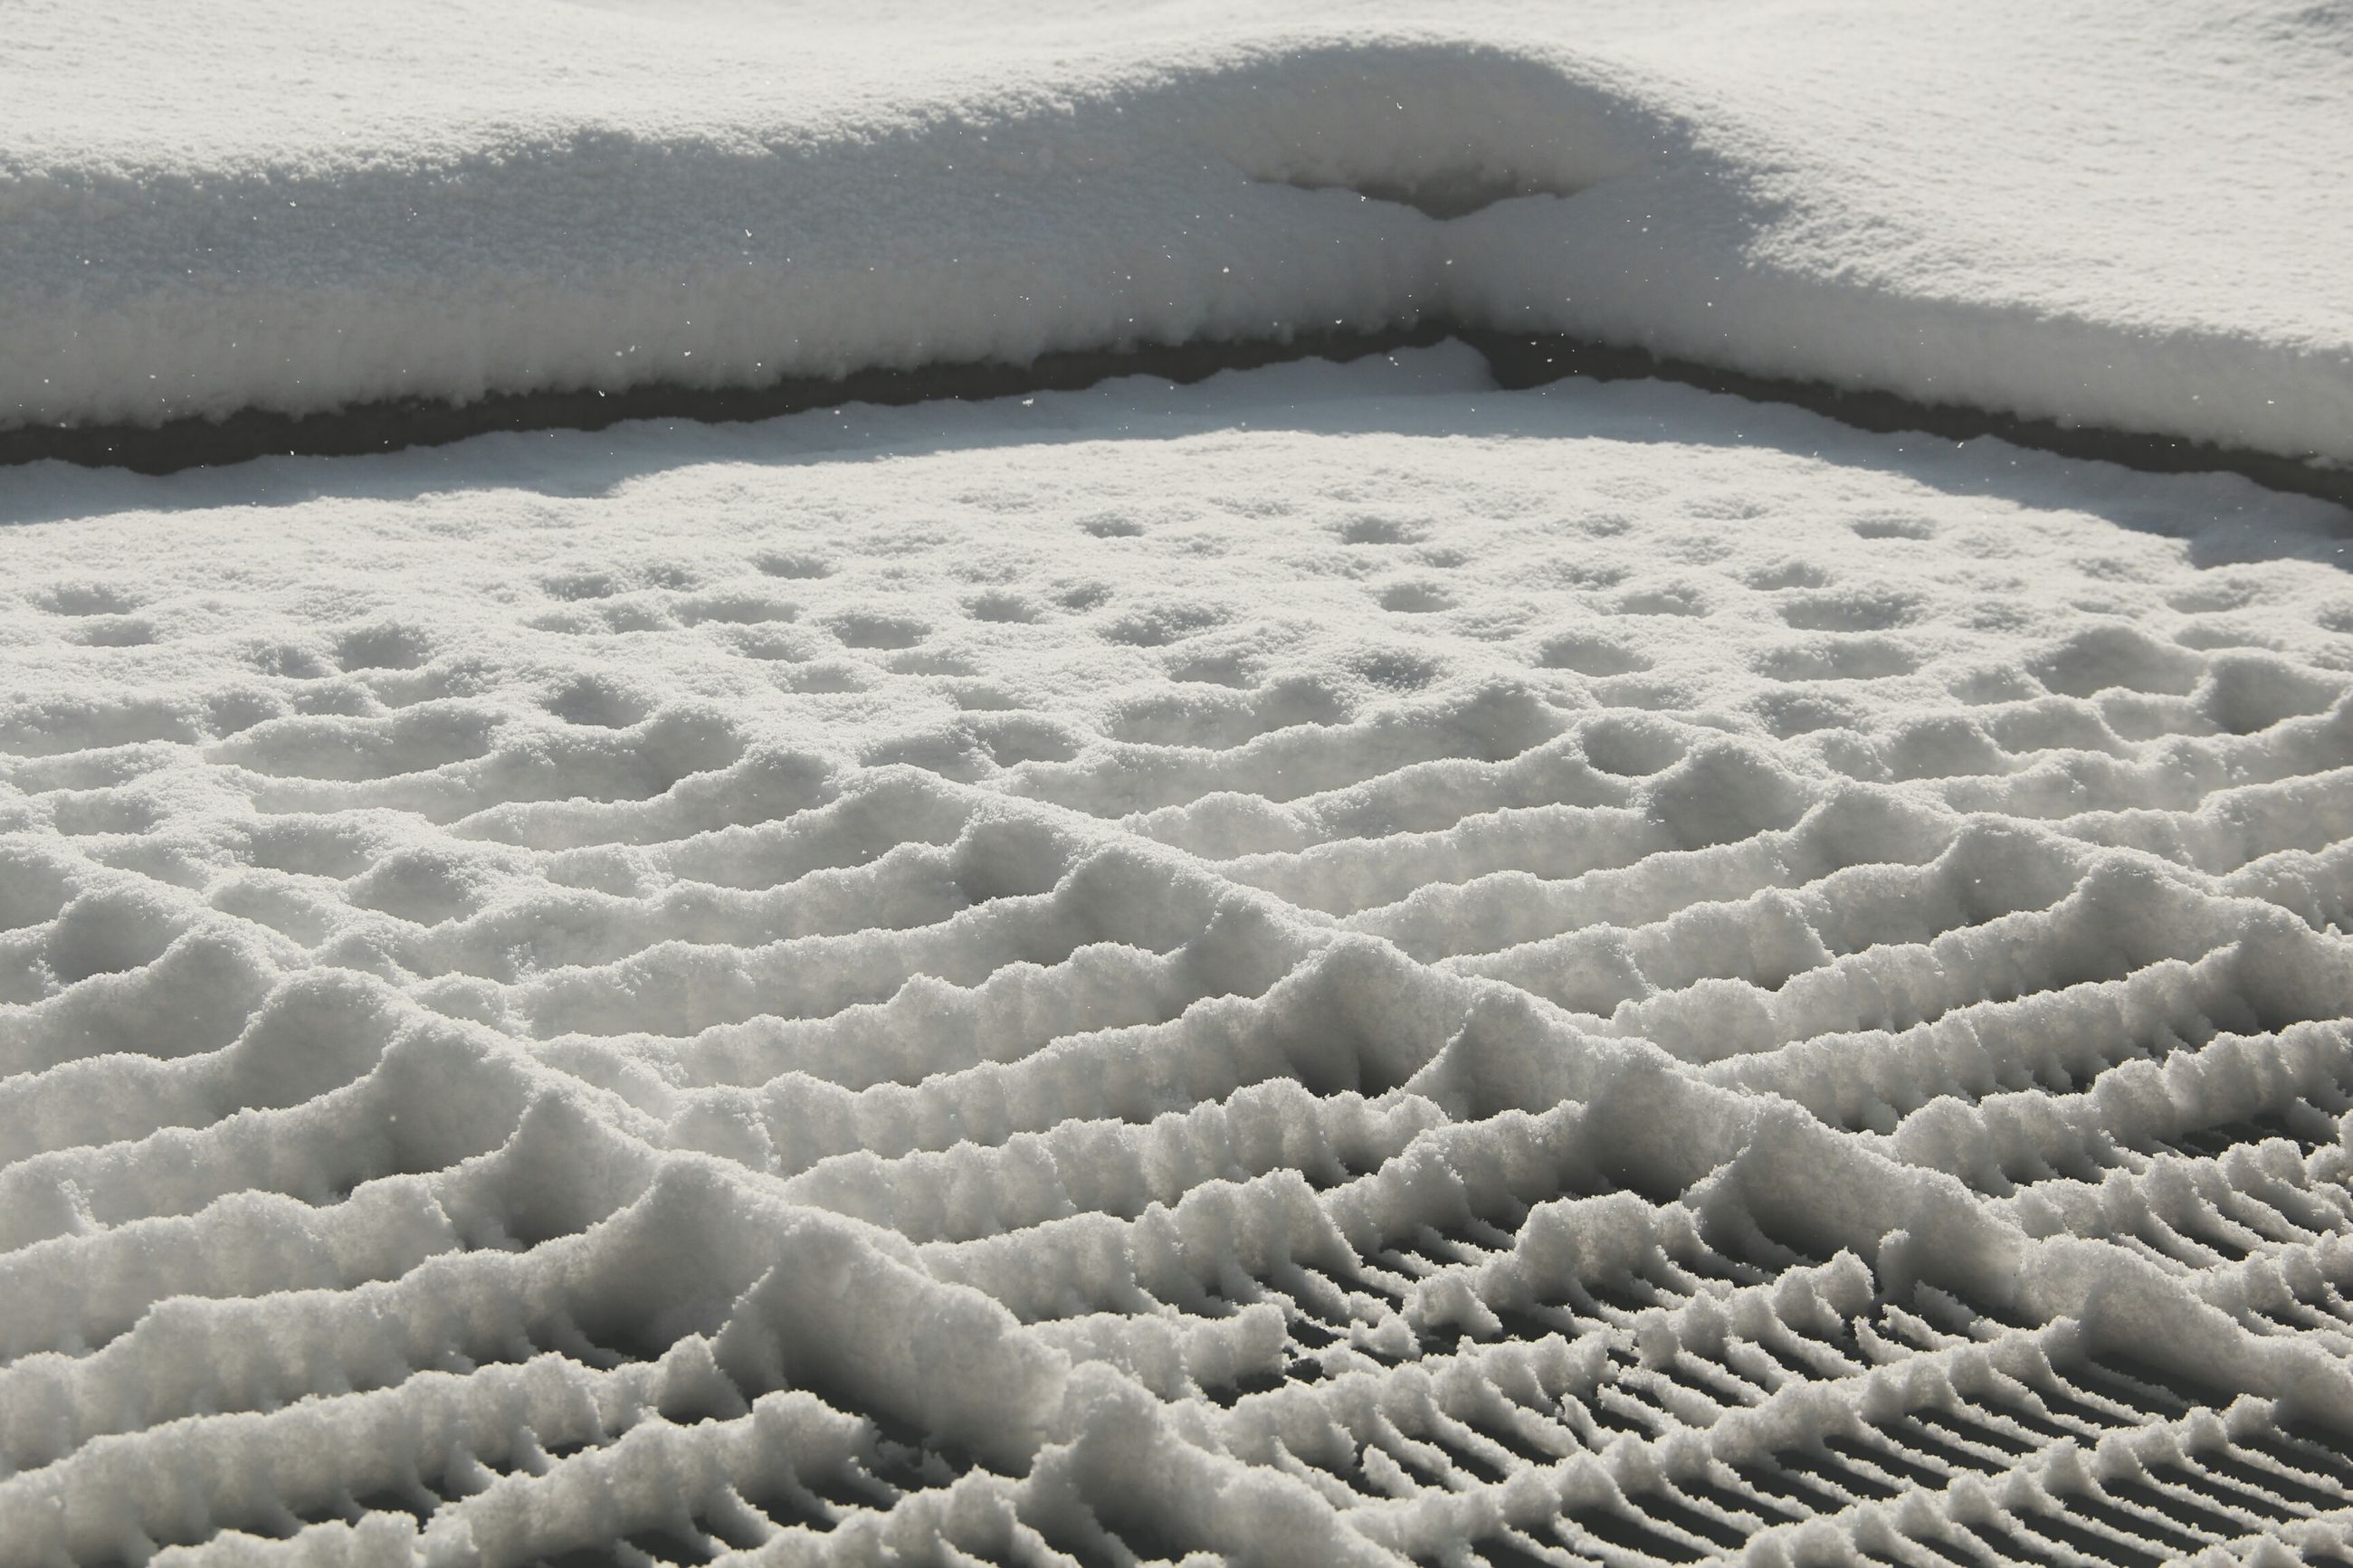 cold temperature, winter, snow, pattern, frozen, season, water, weather, nature, close-up, ice, day, sunlight, white color, tranquility, no people, outdoors, full frame, covering, sea